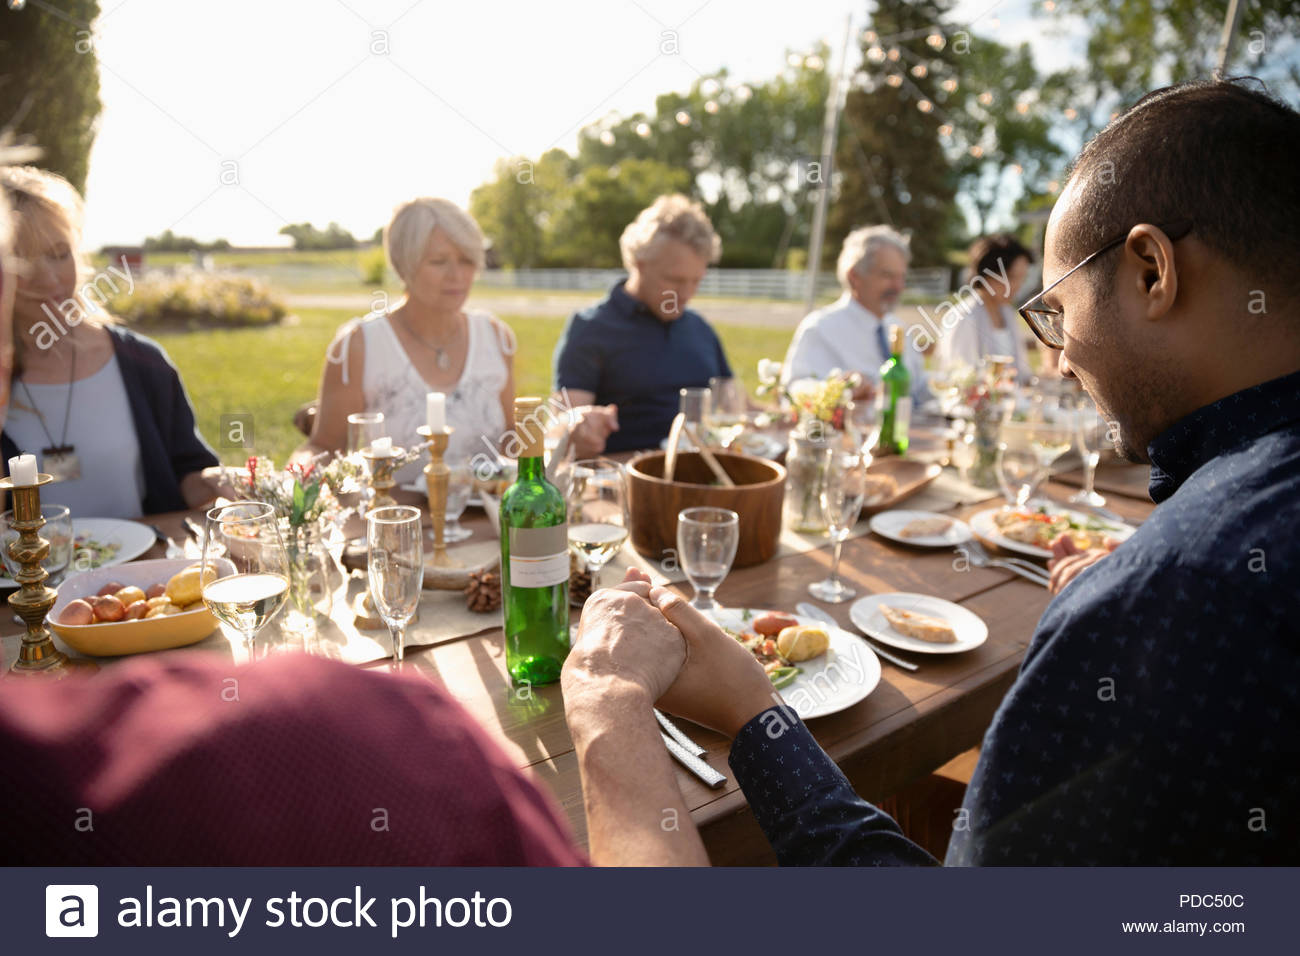 Friends praying, holding hands at sunny garden party lunch - Stock Image